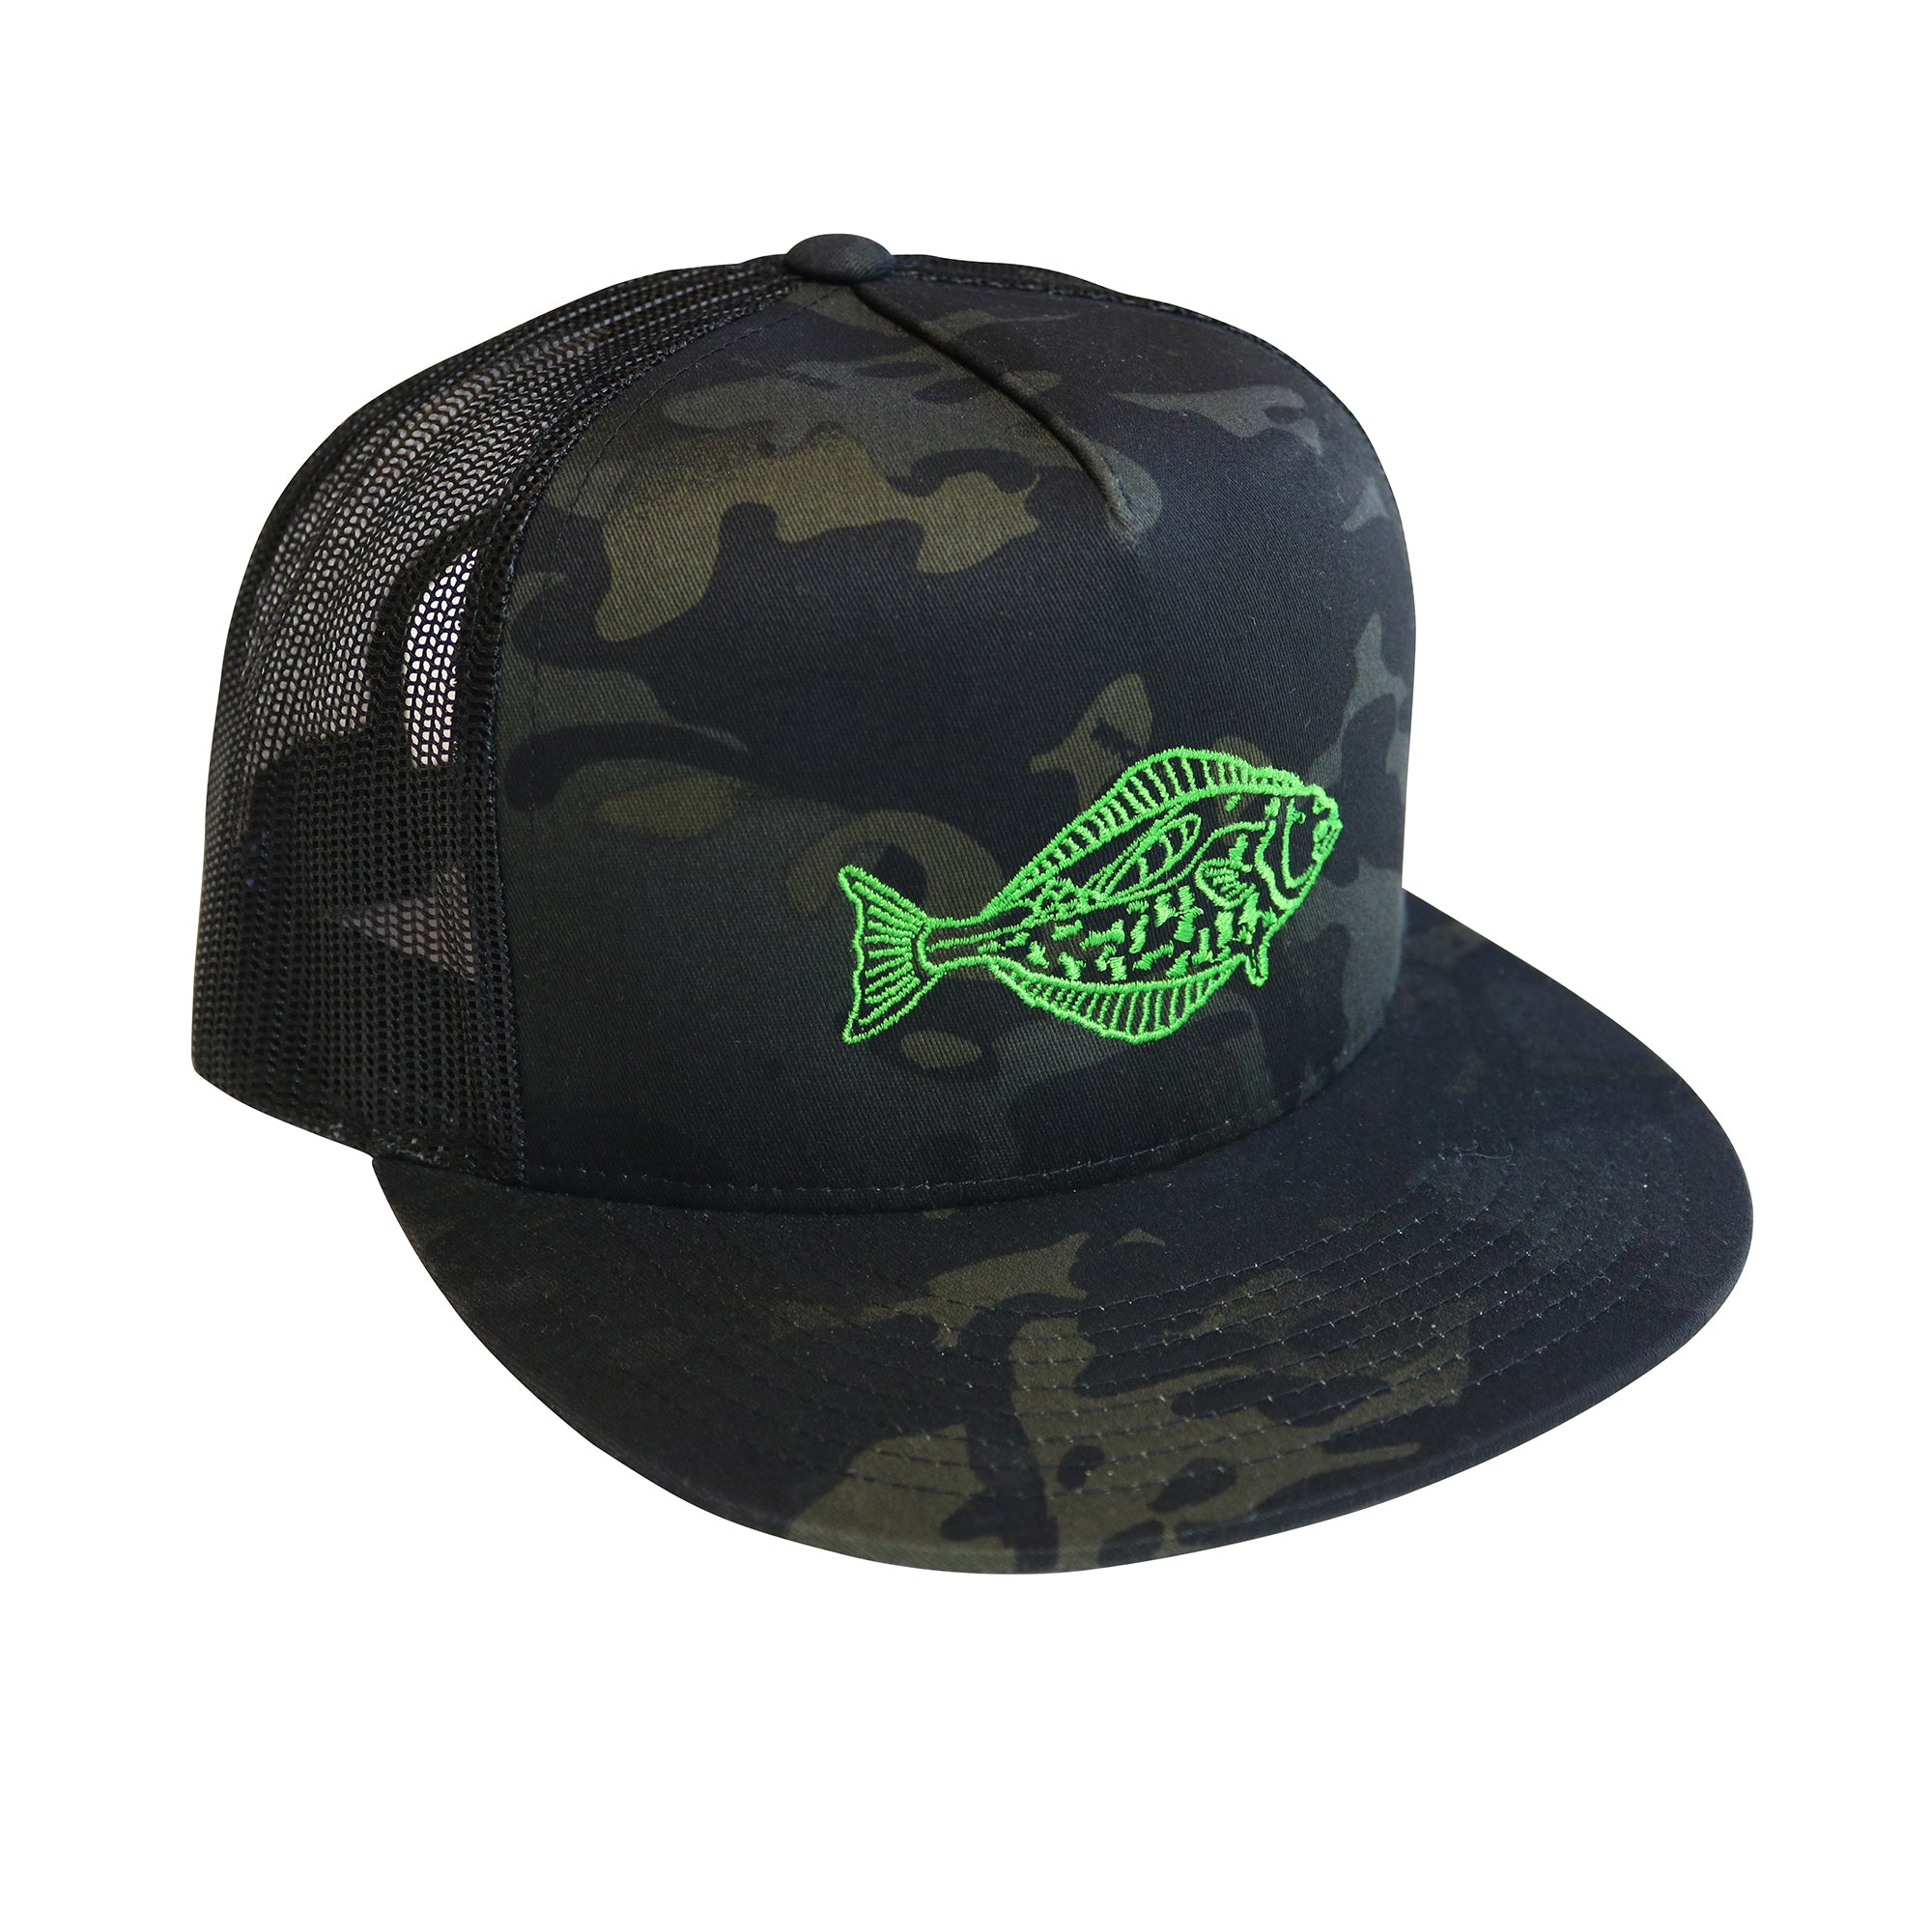 """Halibut"" Snapback 5 Panel Trucker Hat in Limited Mulit-Cam (camouflage"